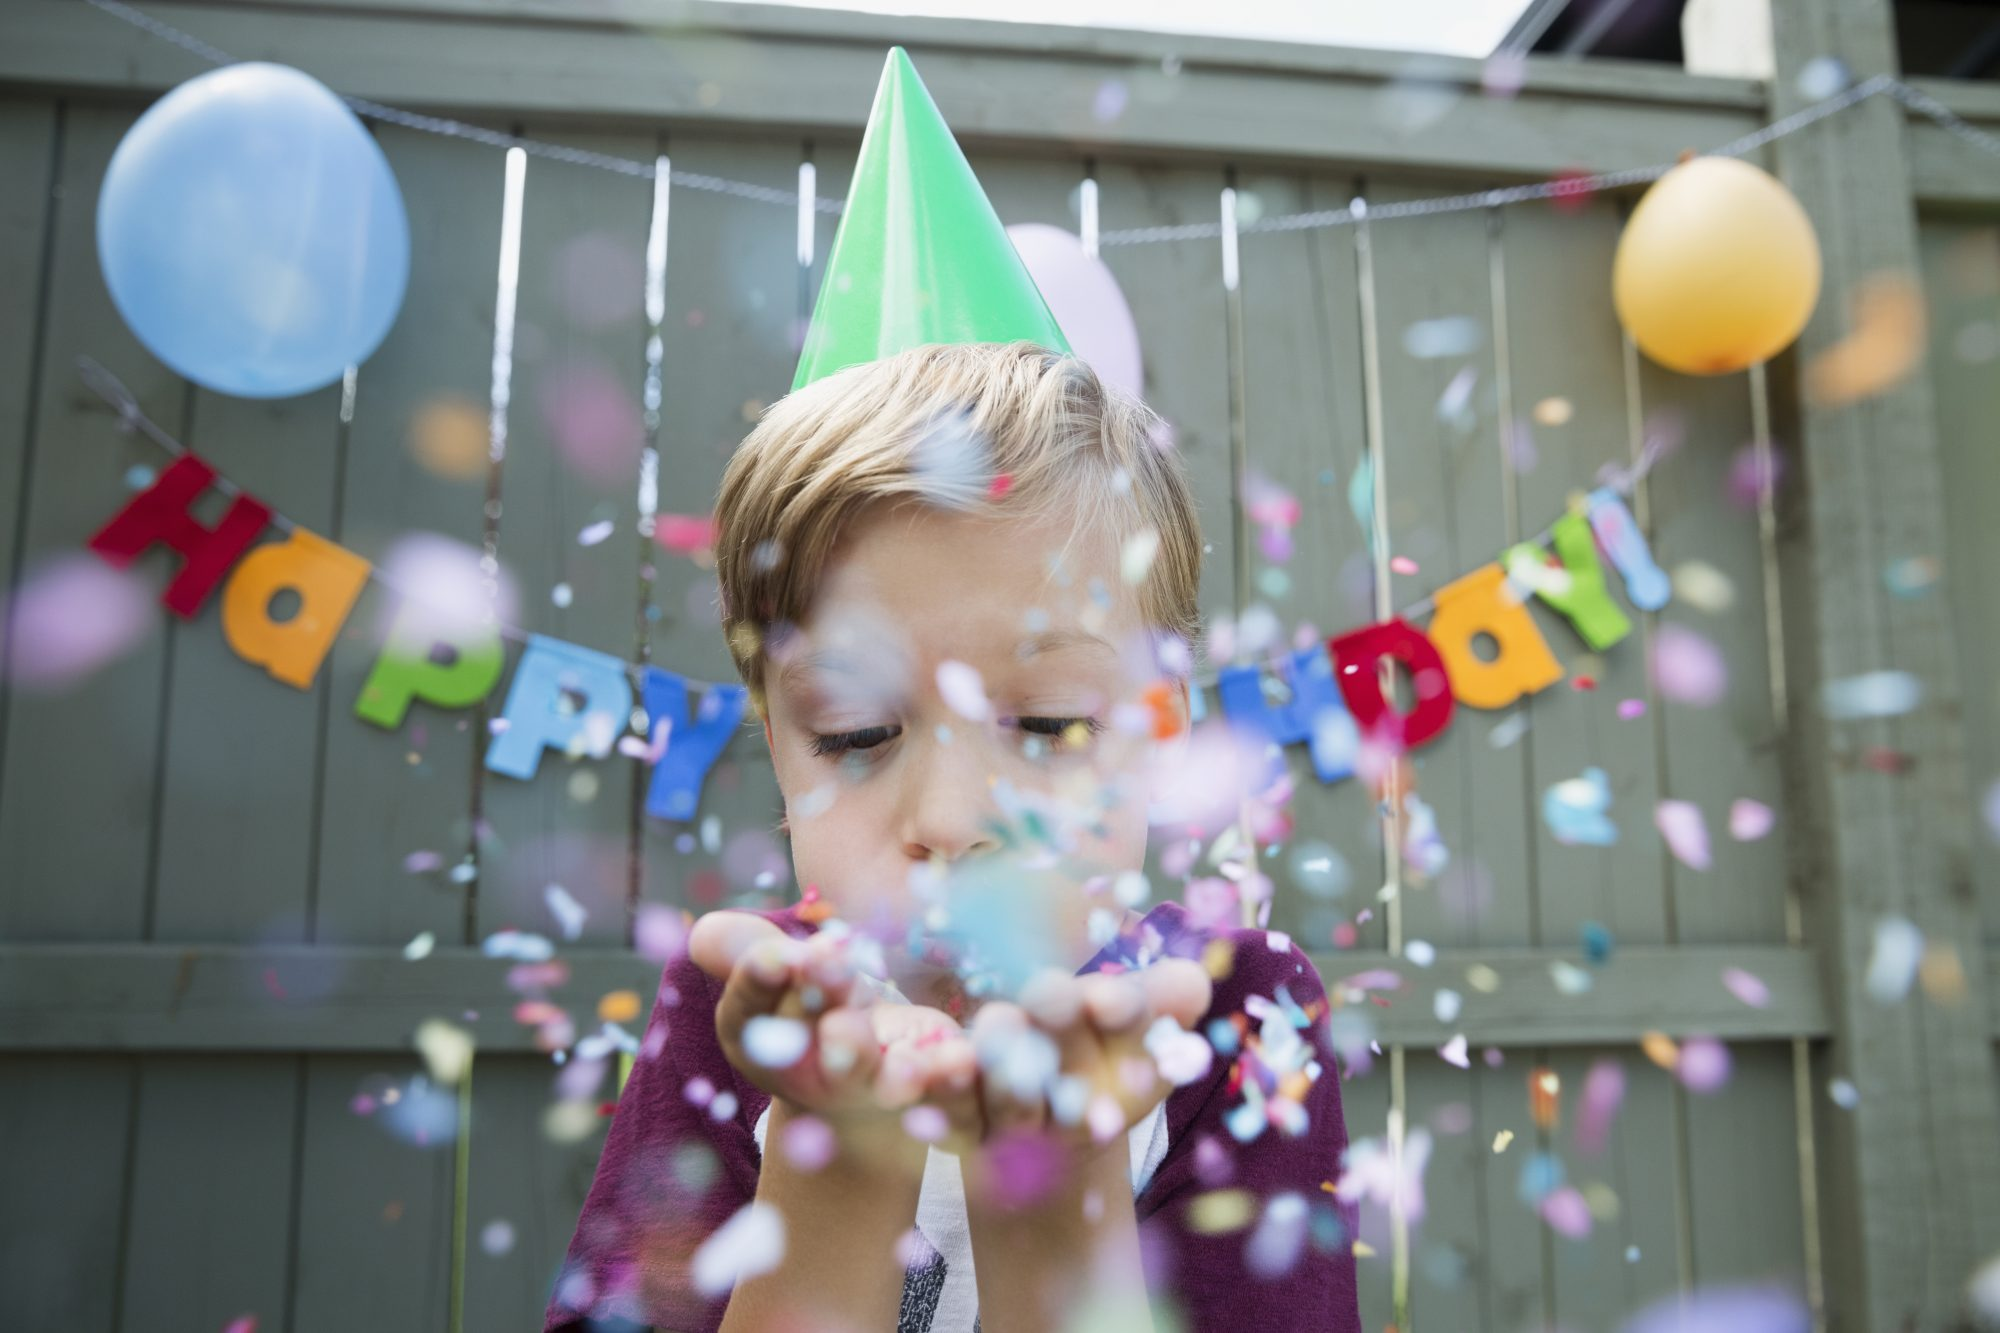 Young Boy Blowing Birthday Confetti